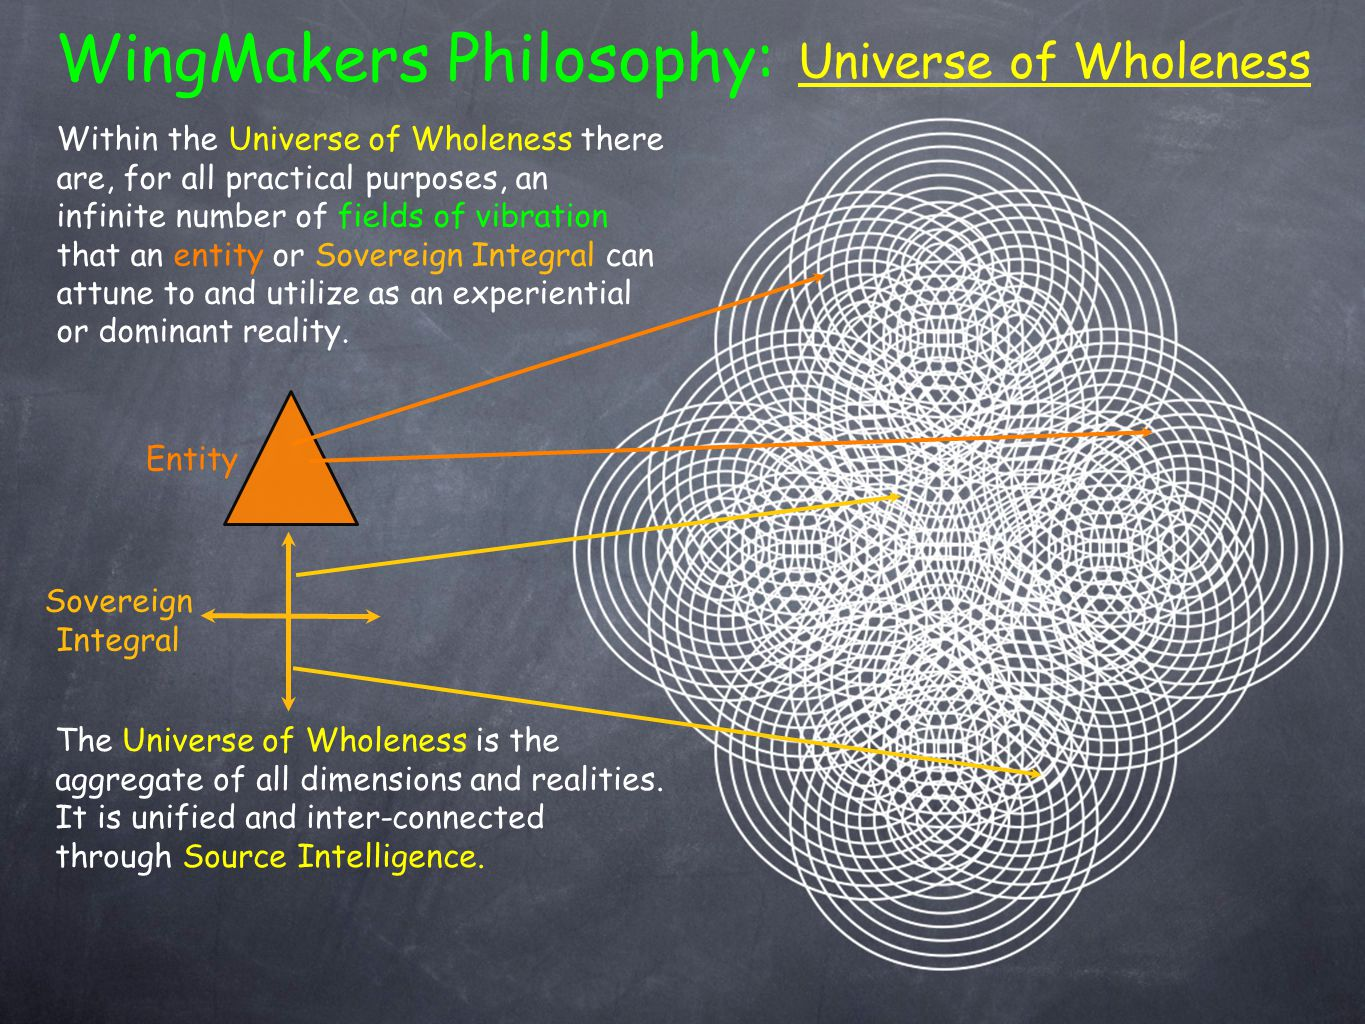 WingMakers Philosophy: Universe of Wholeness The Universe of Wholeness is the aggregate of all dimensions and realities.